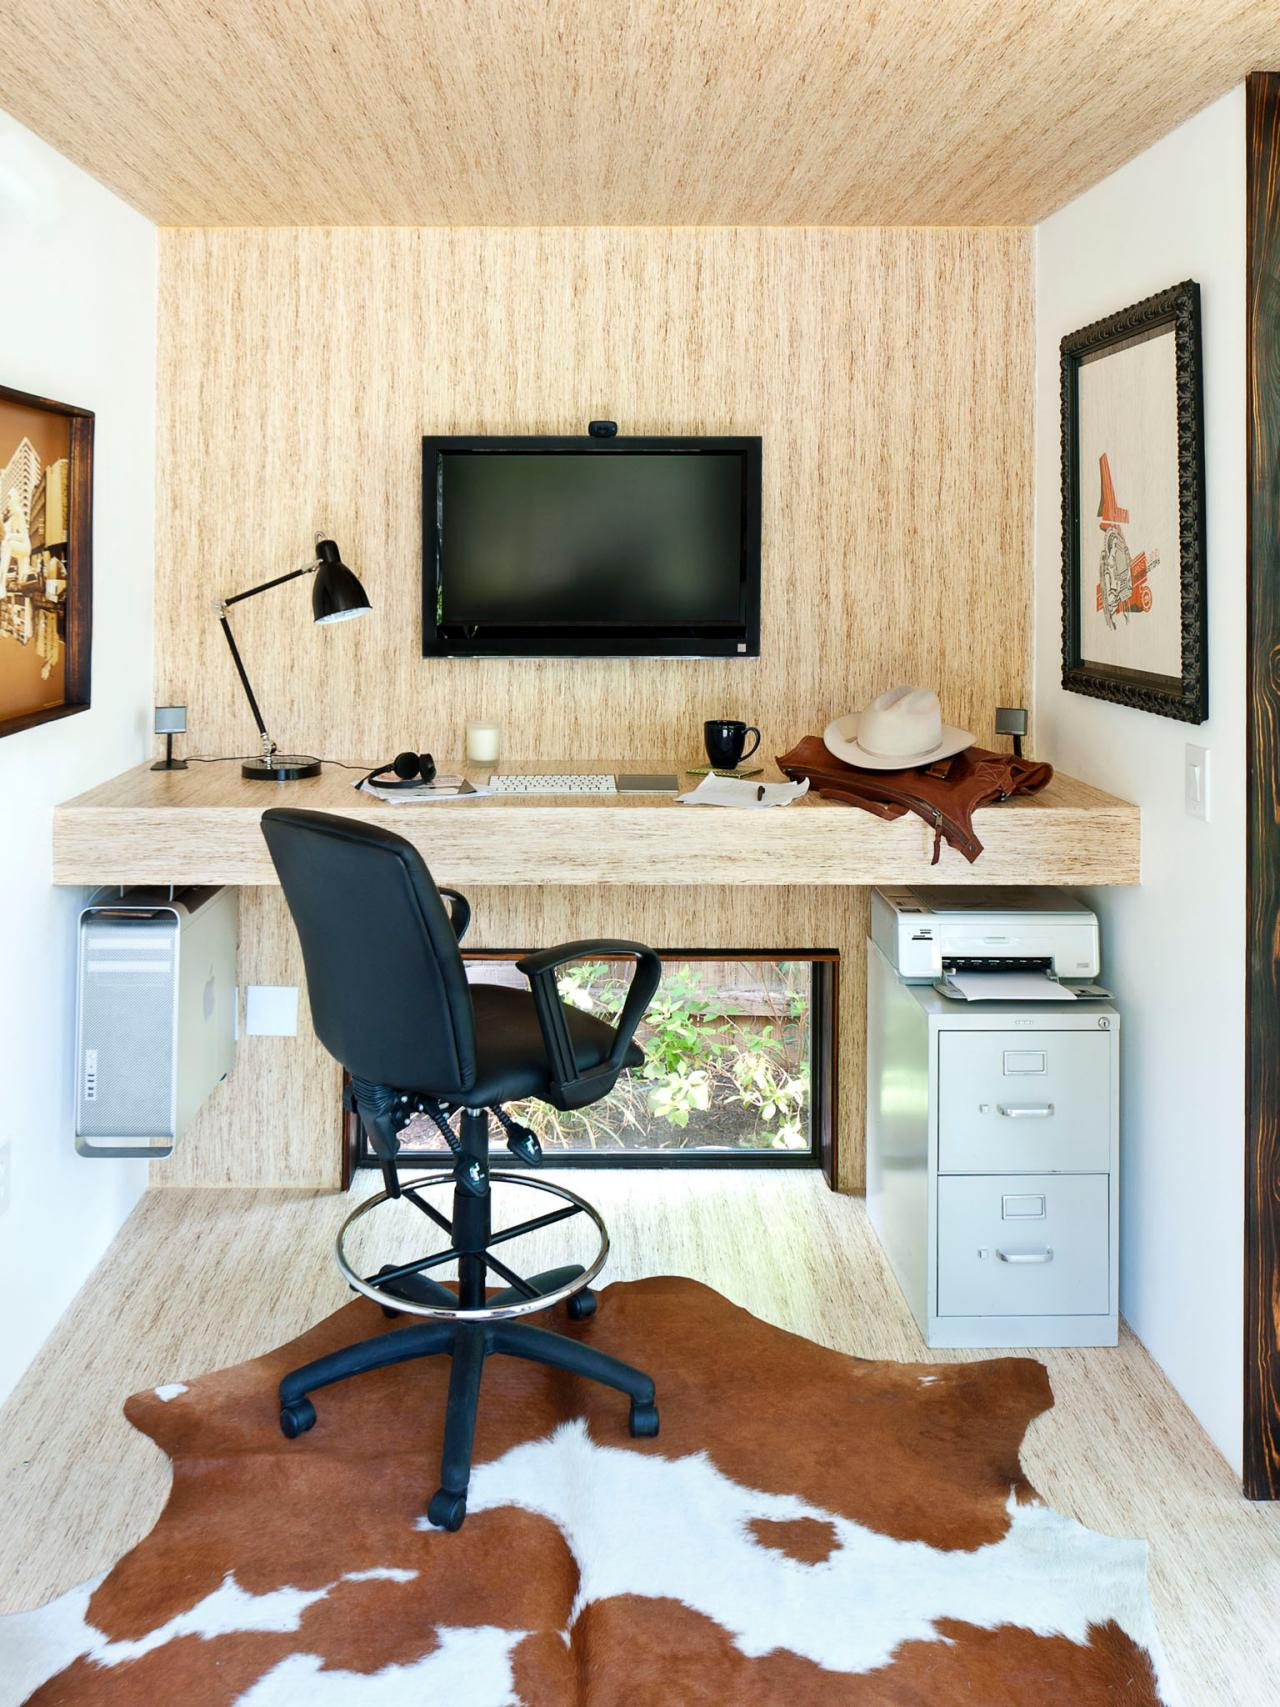 Nervous Wooden Table Desk also Ceiling and Wall Plus Black Chair